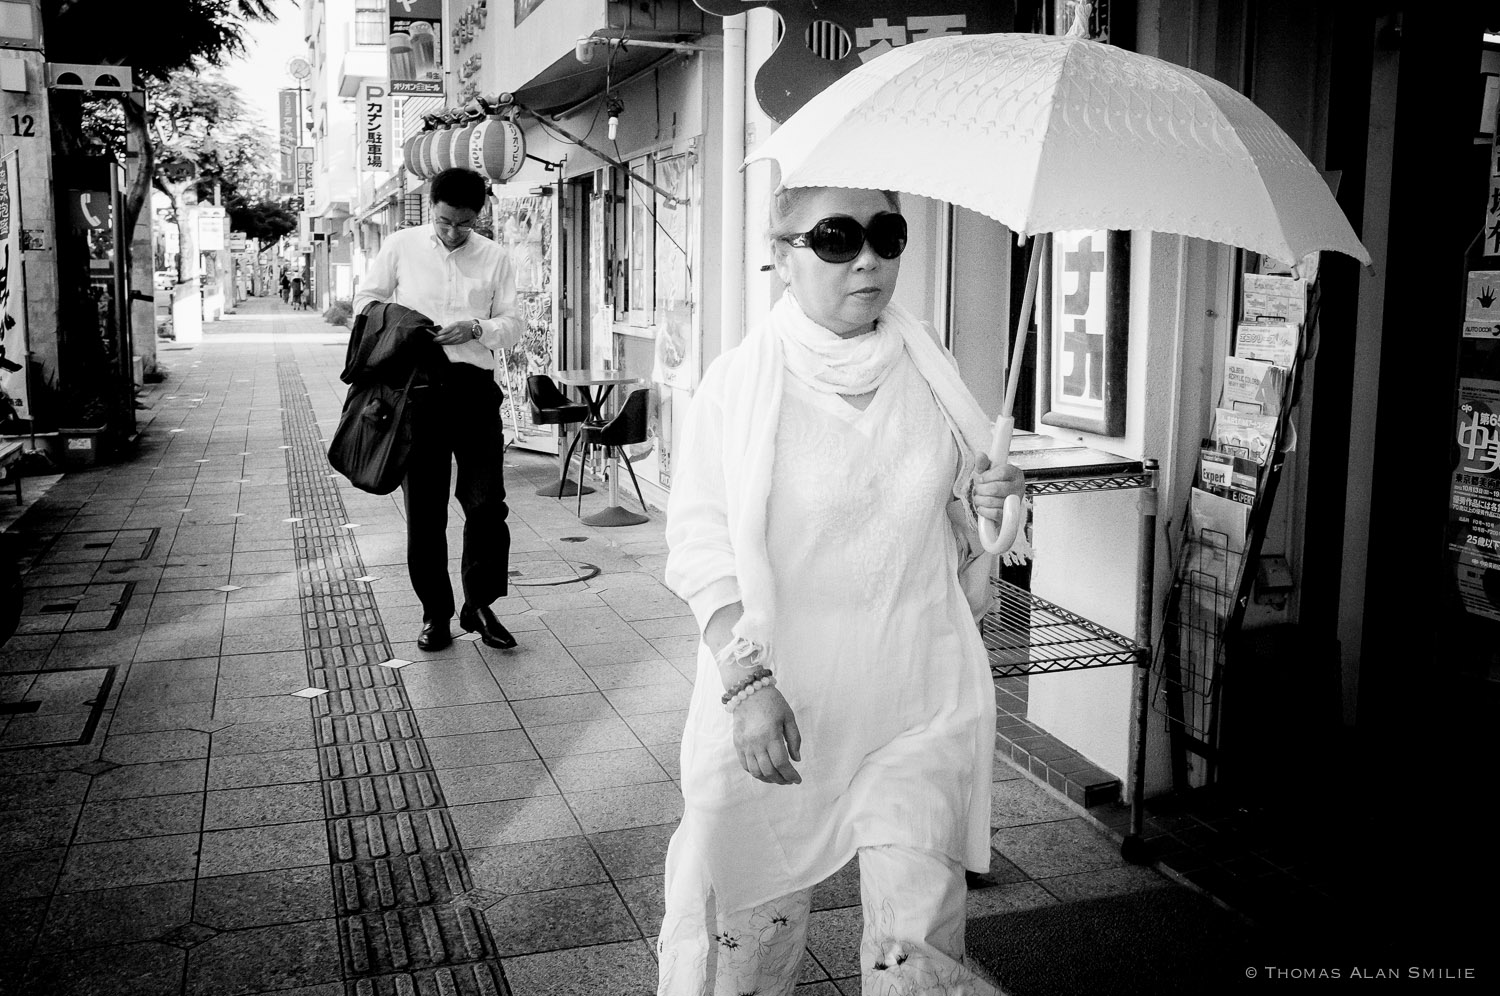 Japan Street Photo. Kokusai Street in Naha, Okinawa. Fuji x100 f/8